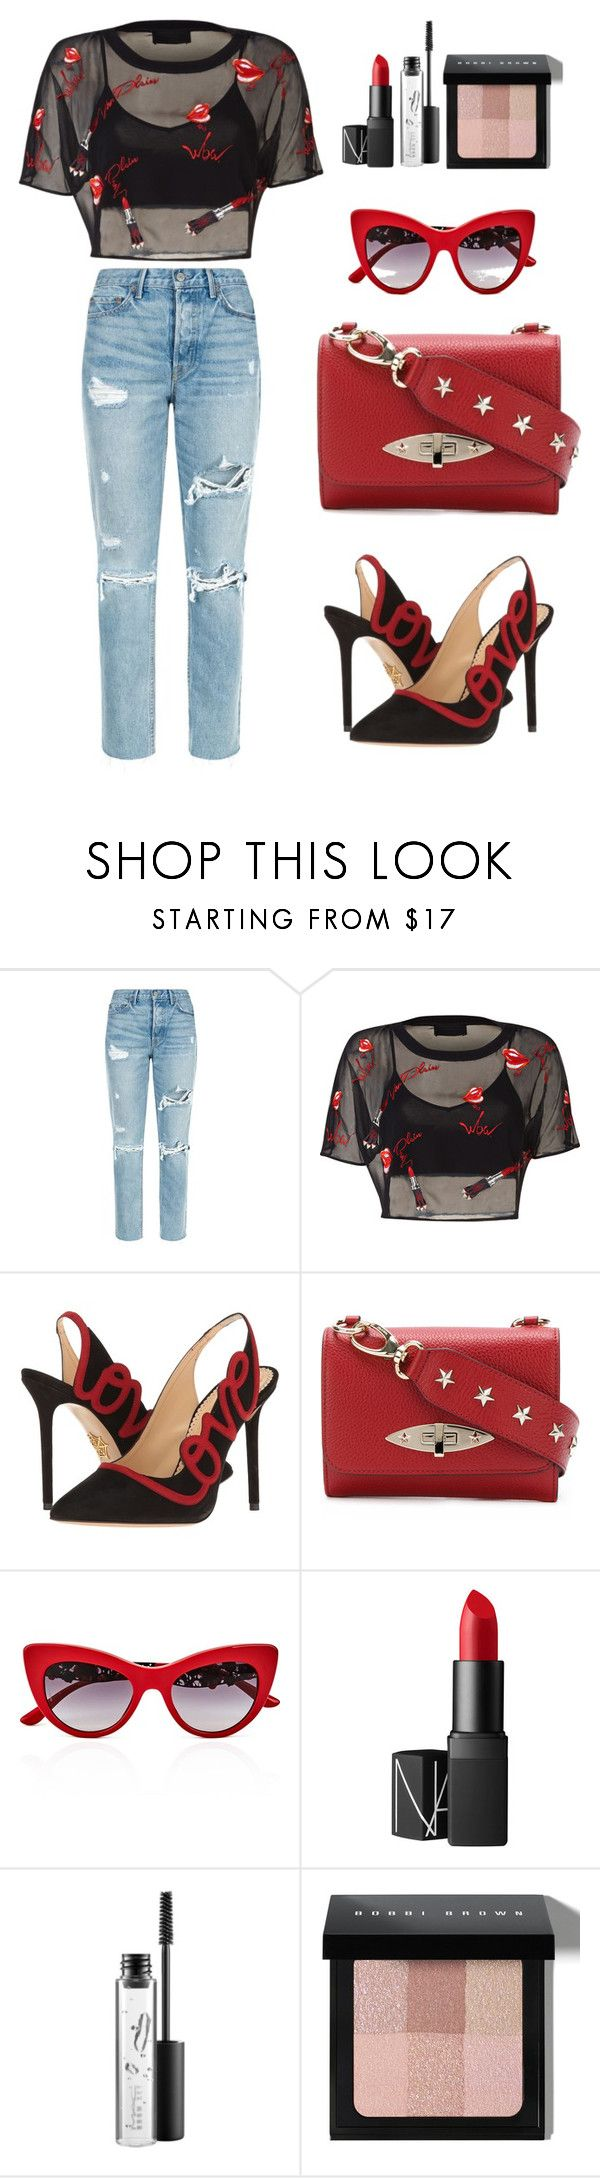 """Mix and Match with Lips Top"" by salbiylaazzara-fashion on Polyvore featuring GRLFRND, Charlotte Olympia, RED Valentino, Dolce&Gabbana, NARS Cosmetics, MAC Cosmetics and Bobbi Brown Cosmetics"